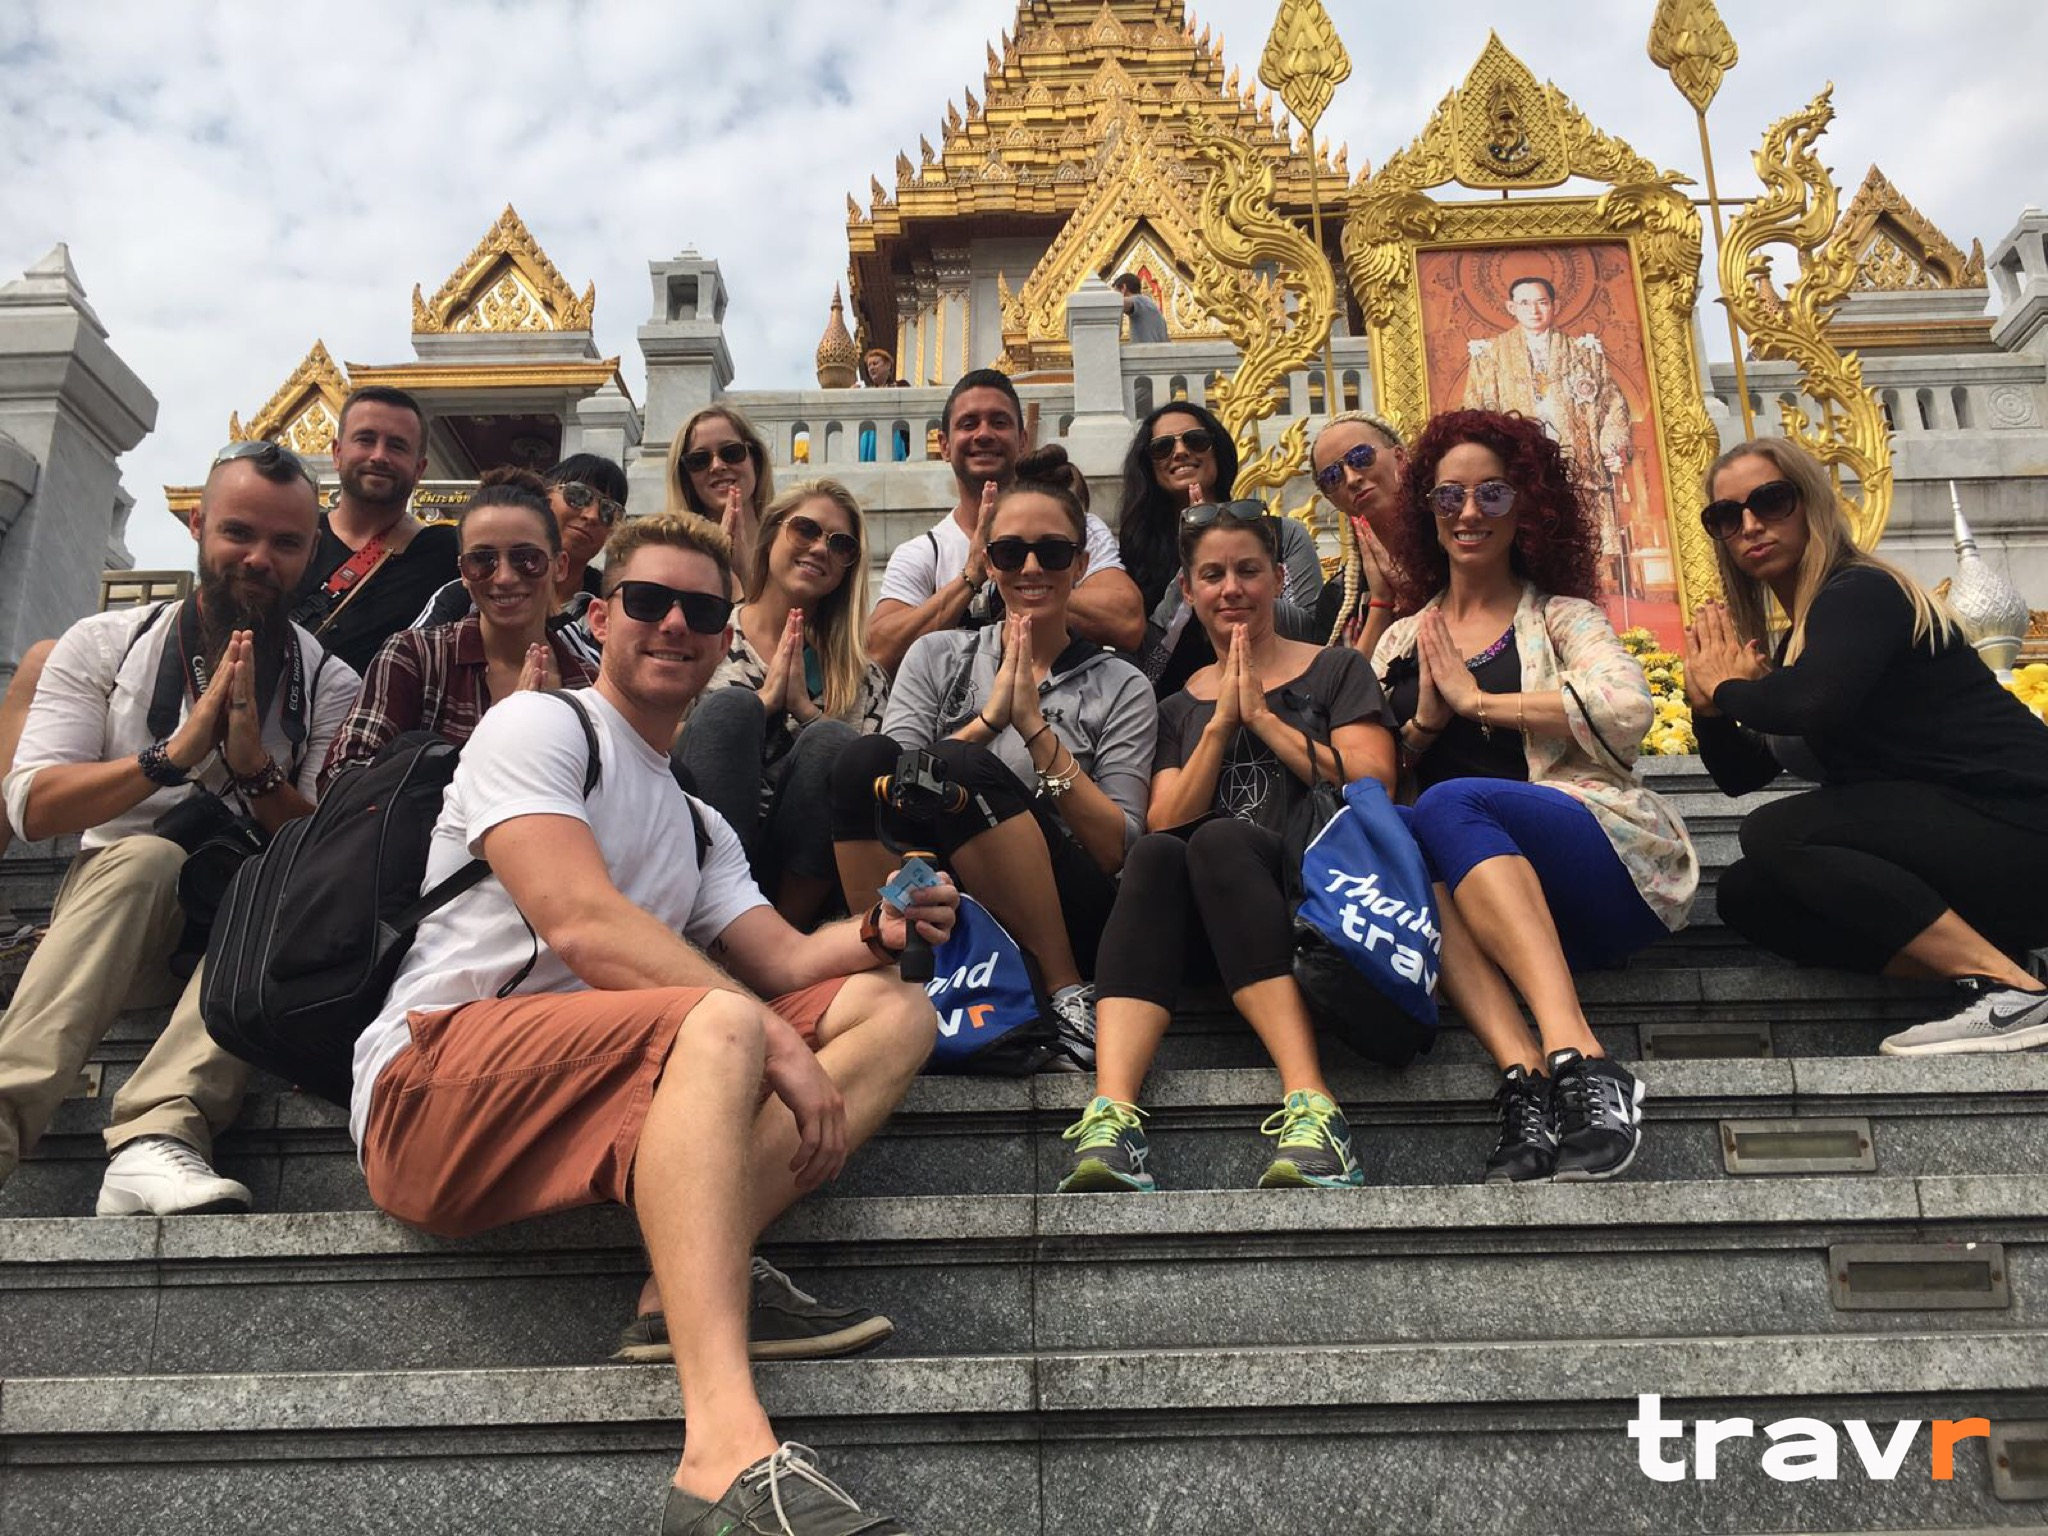 Travr in Thailand